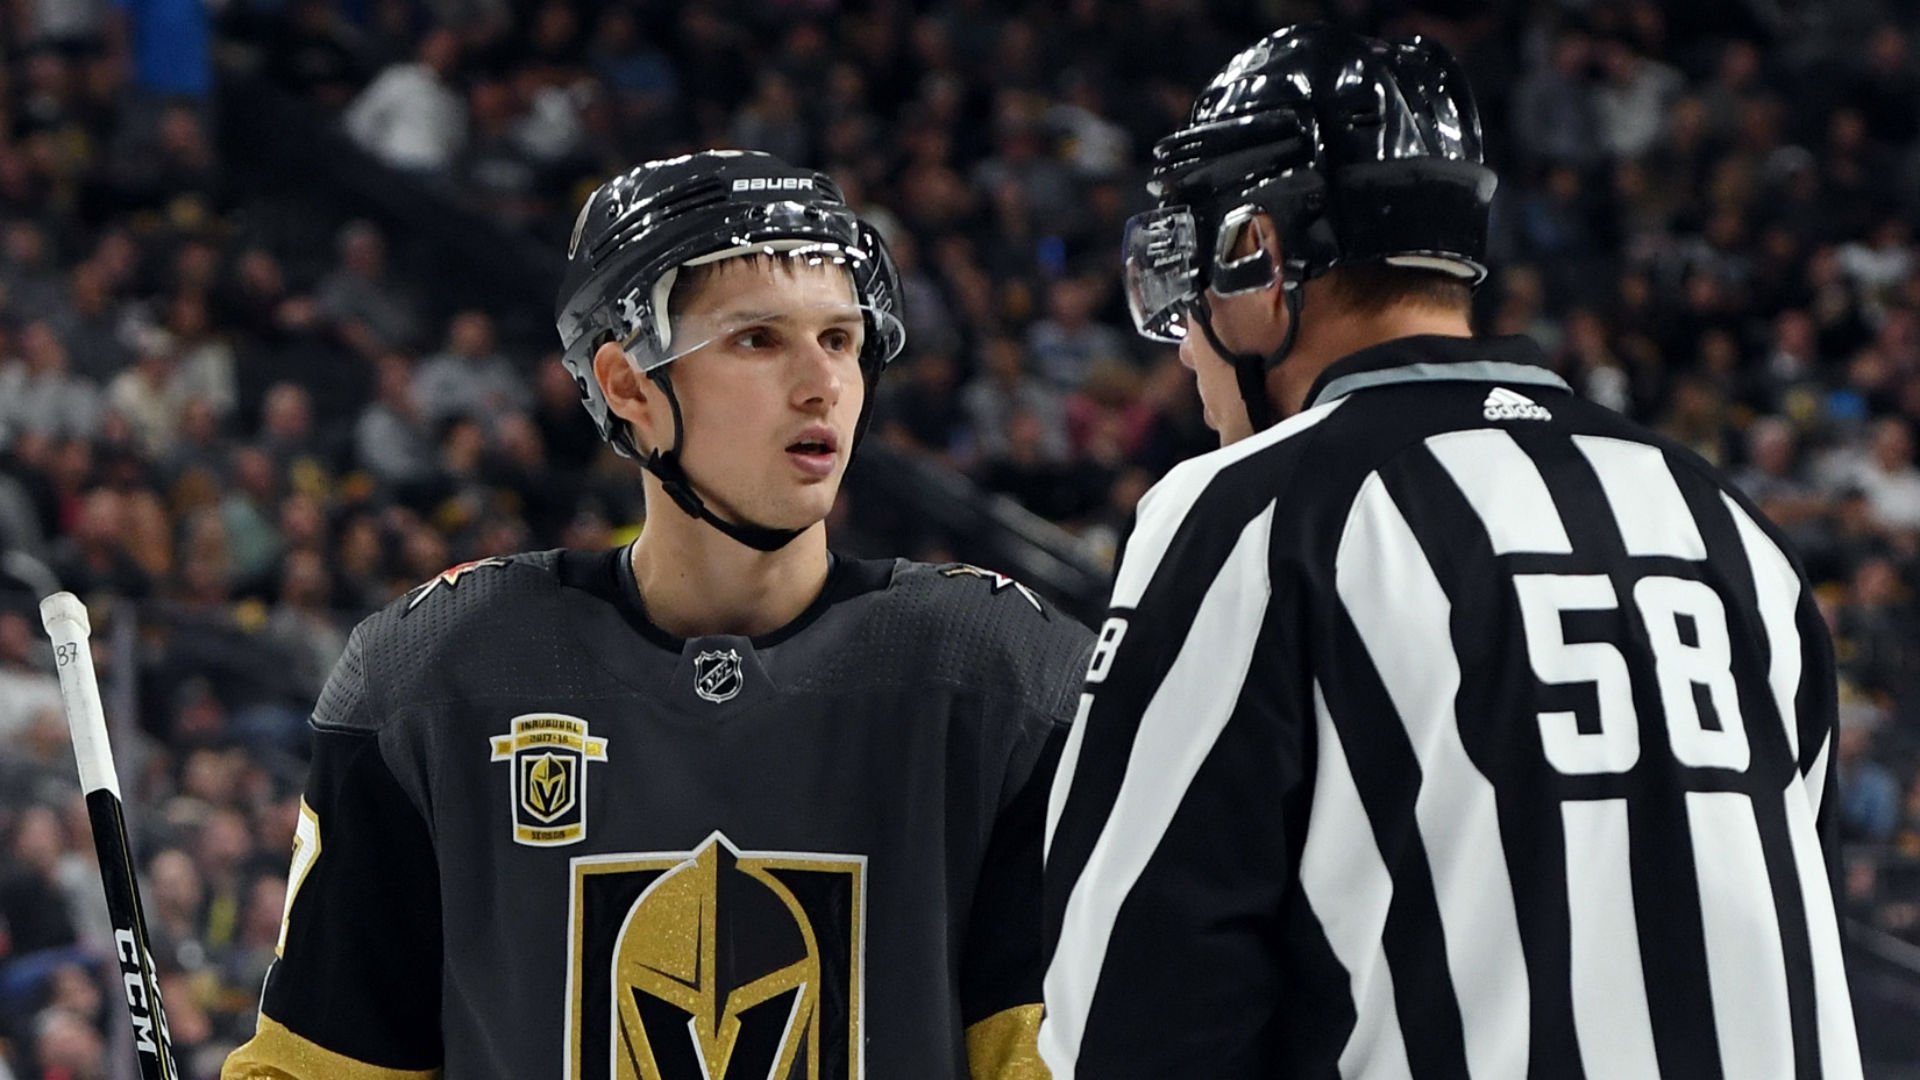 Back in KHL, Vadim Shipachyov warns Russian players: 'Think 10 times before leaving'